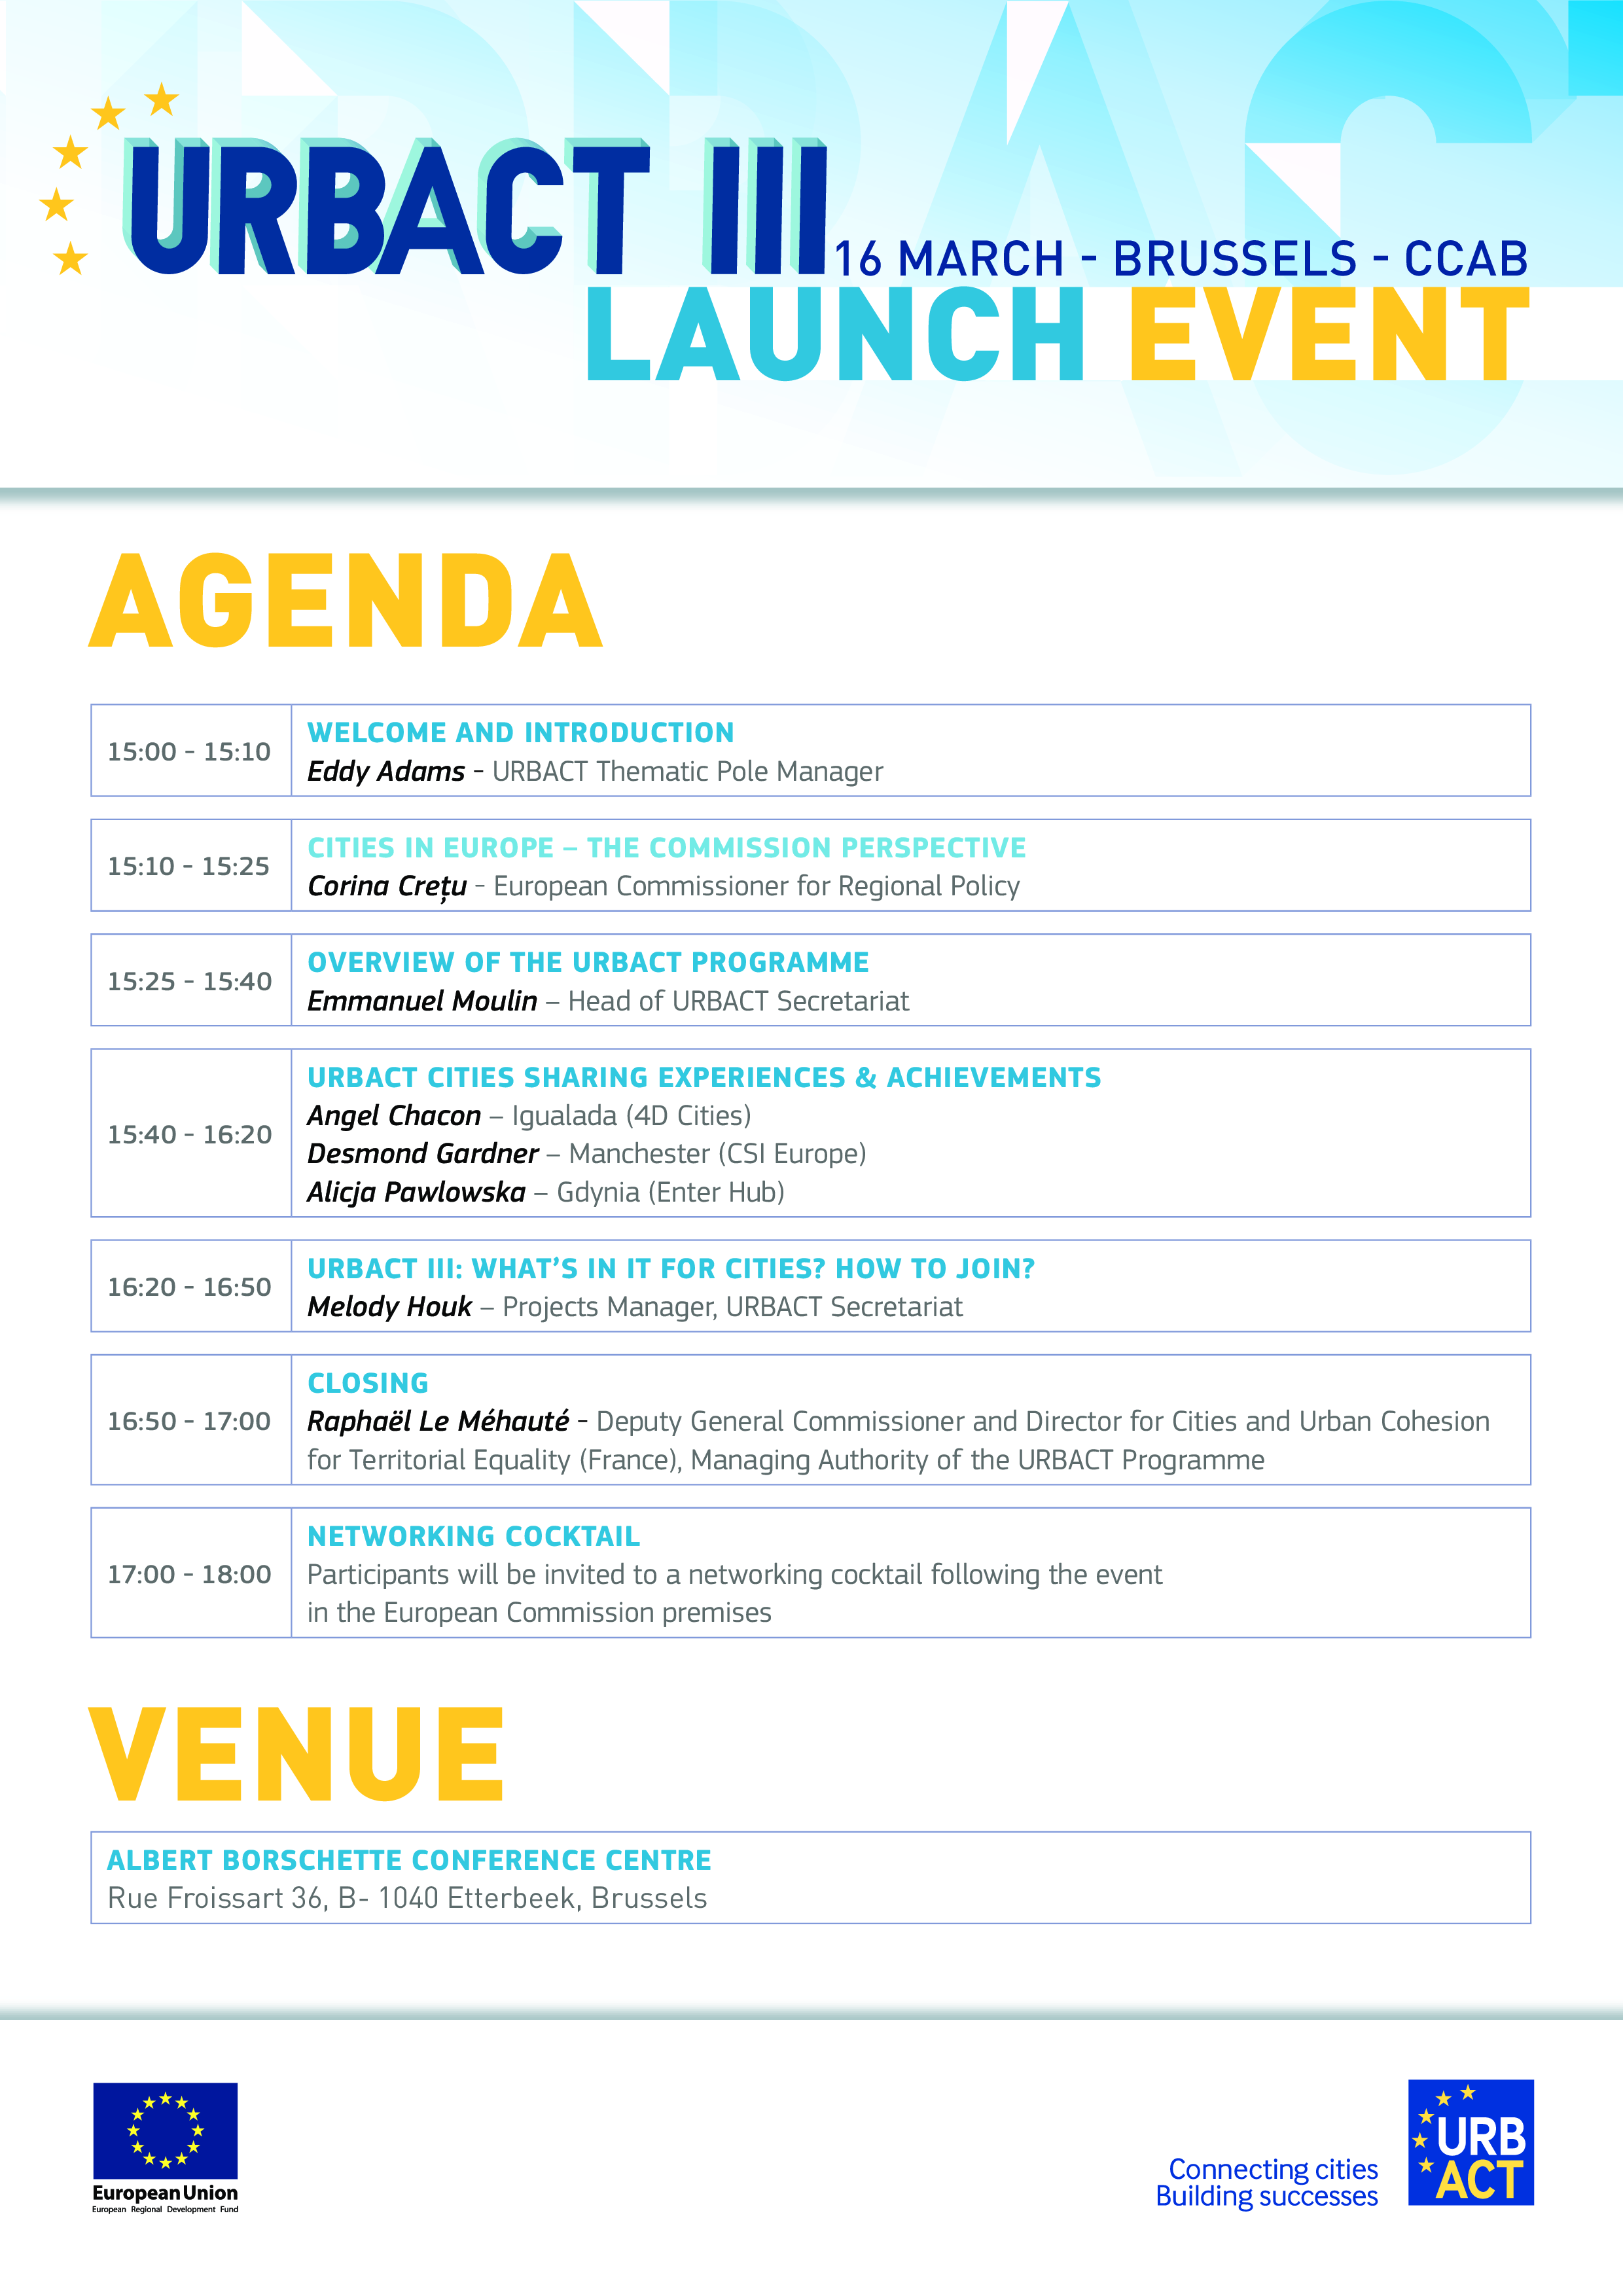 How To Draft A Launch Event Agenda An Easy Way To Start Organizing Your Launch Event Agenda Template Now Event Agenda Agenda Template Party Agenda